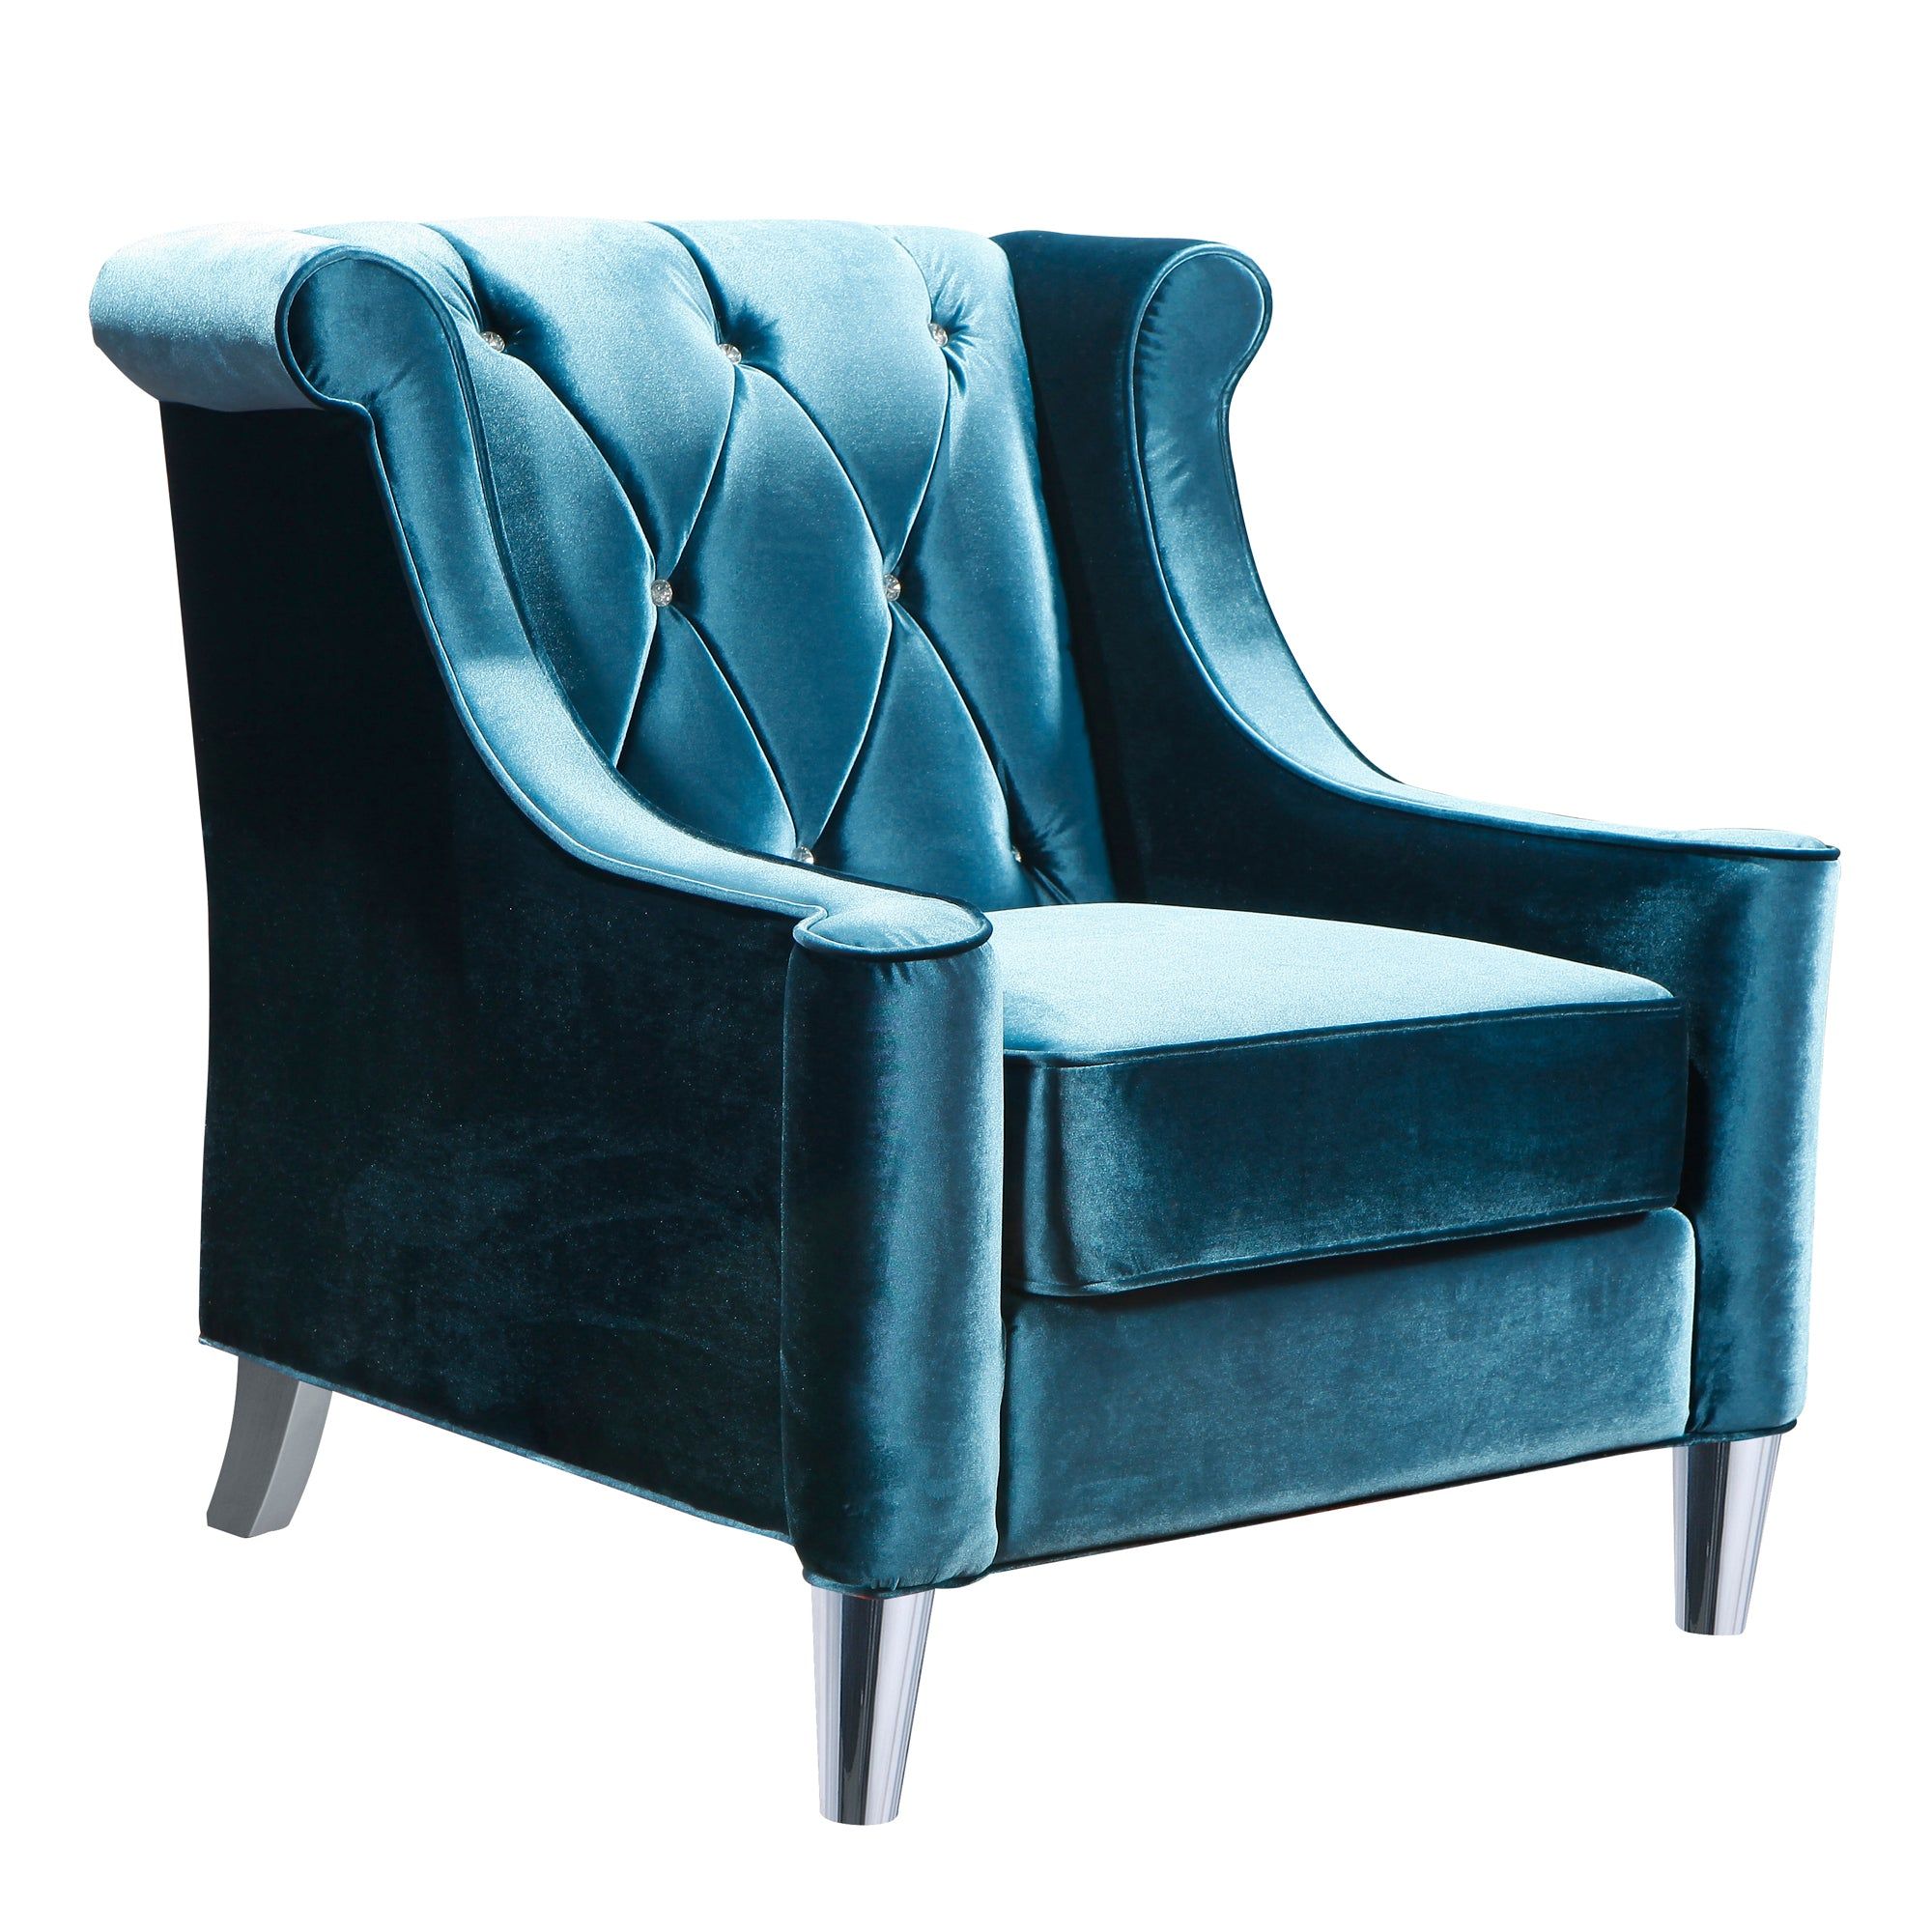 Armen Living Chair Blue Velvet Crystal Buttons Barrister